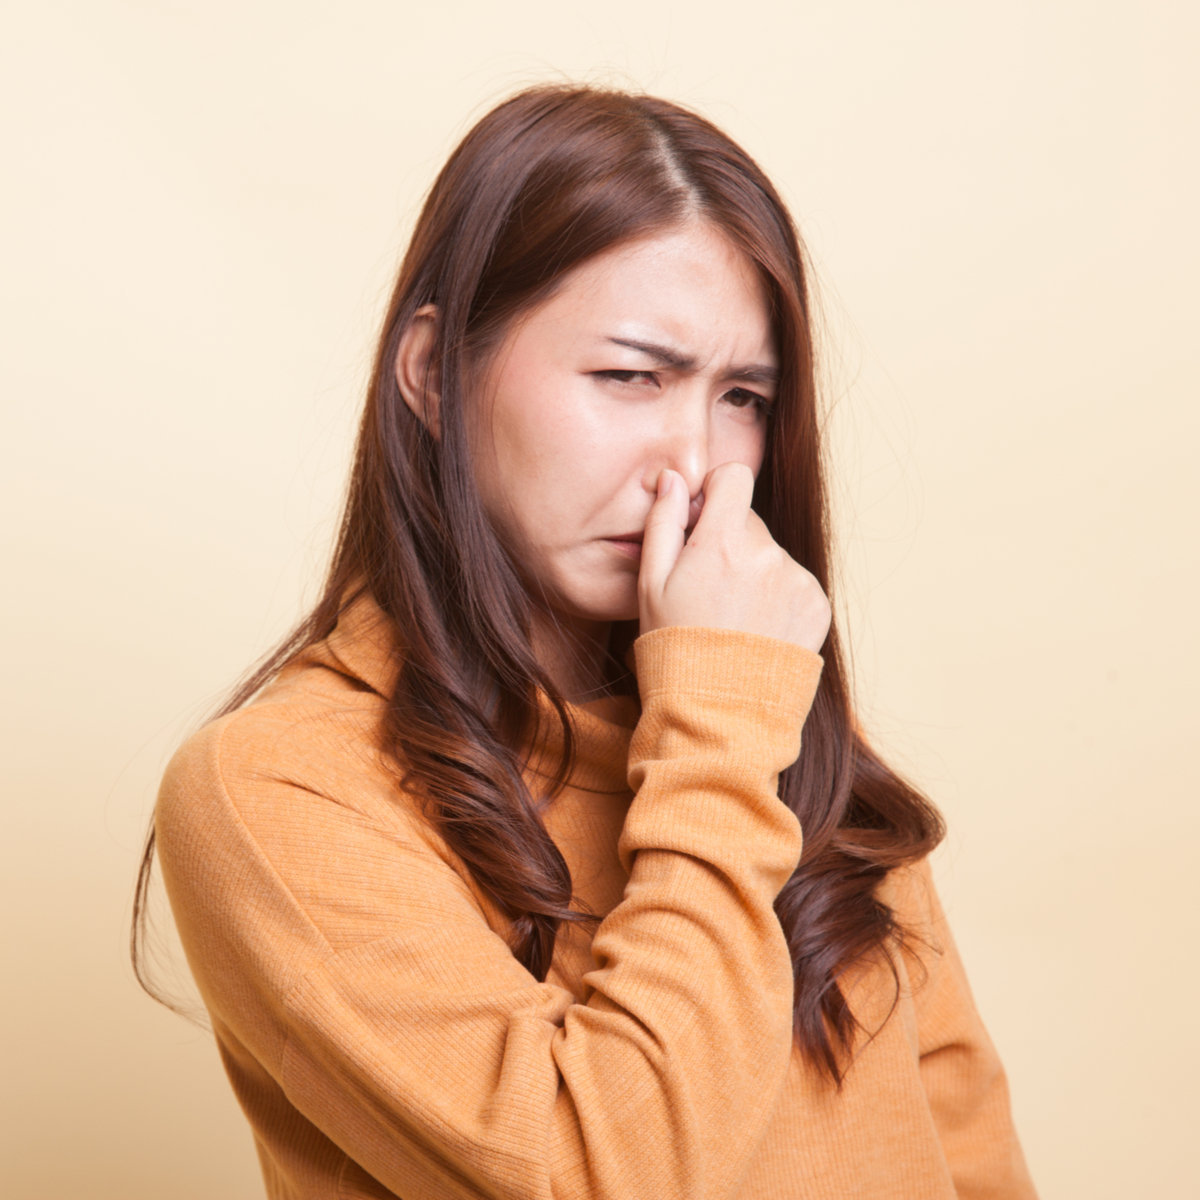 woman holding breath because hygienist has horrible breath